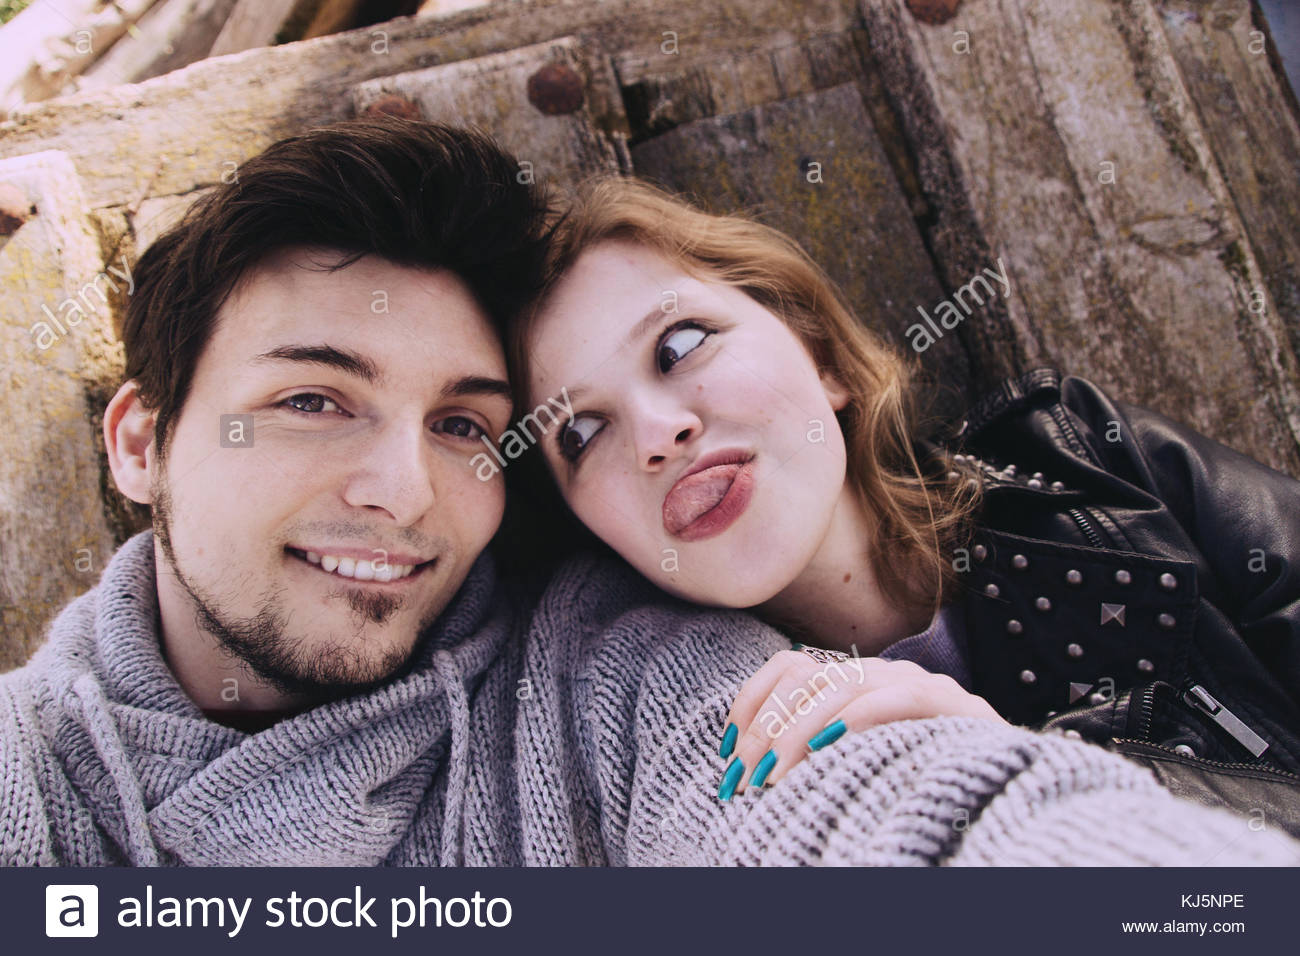 Lovely  happy young couple smile taking a selfie - Stock Image